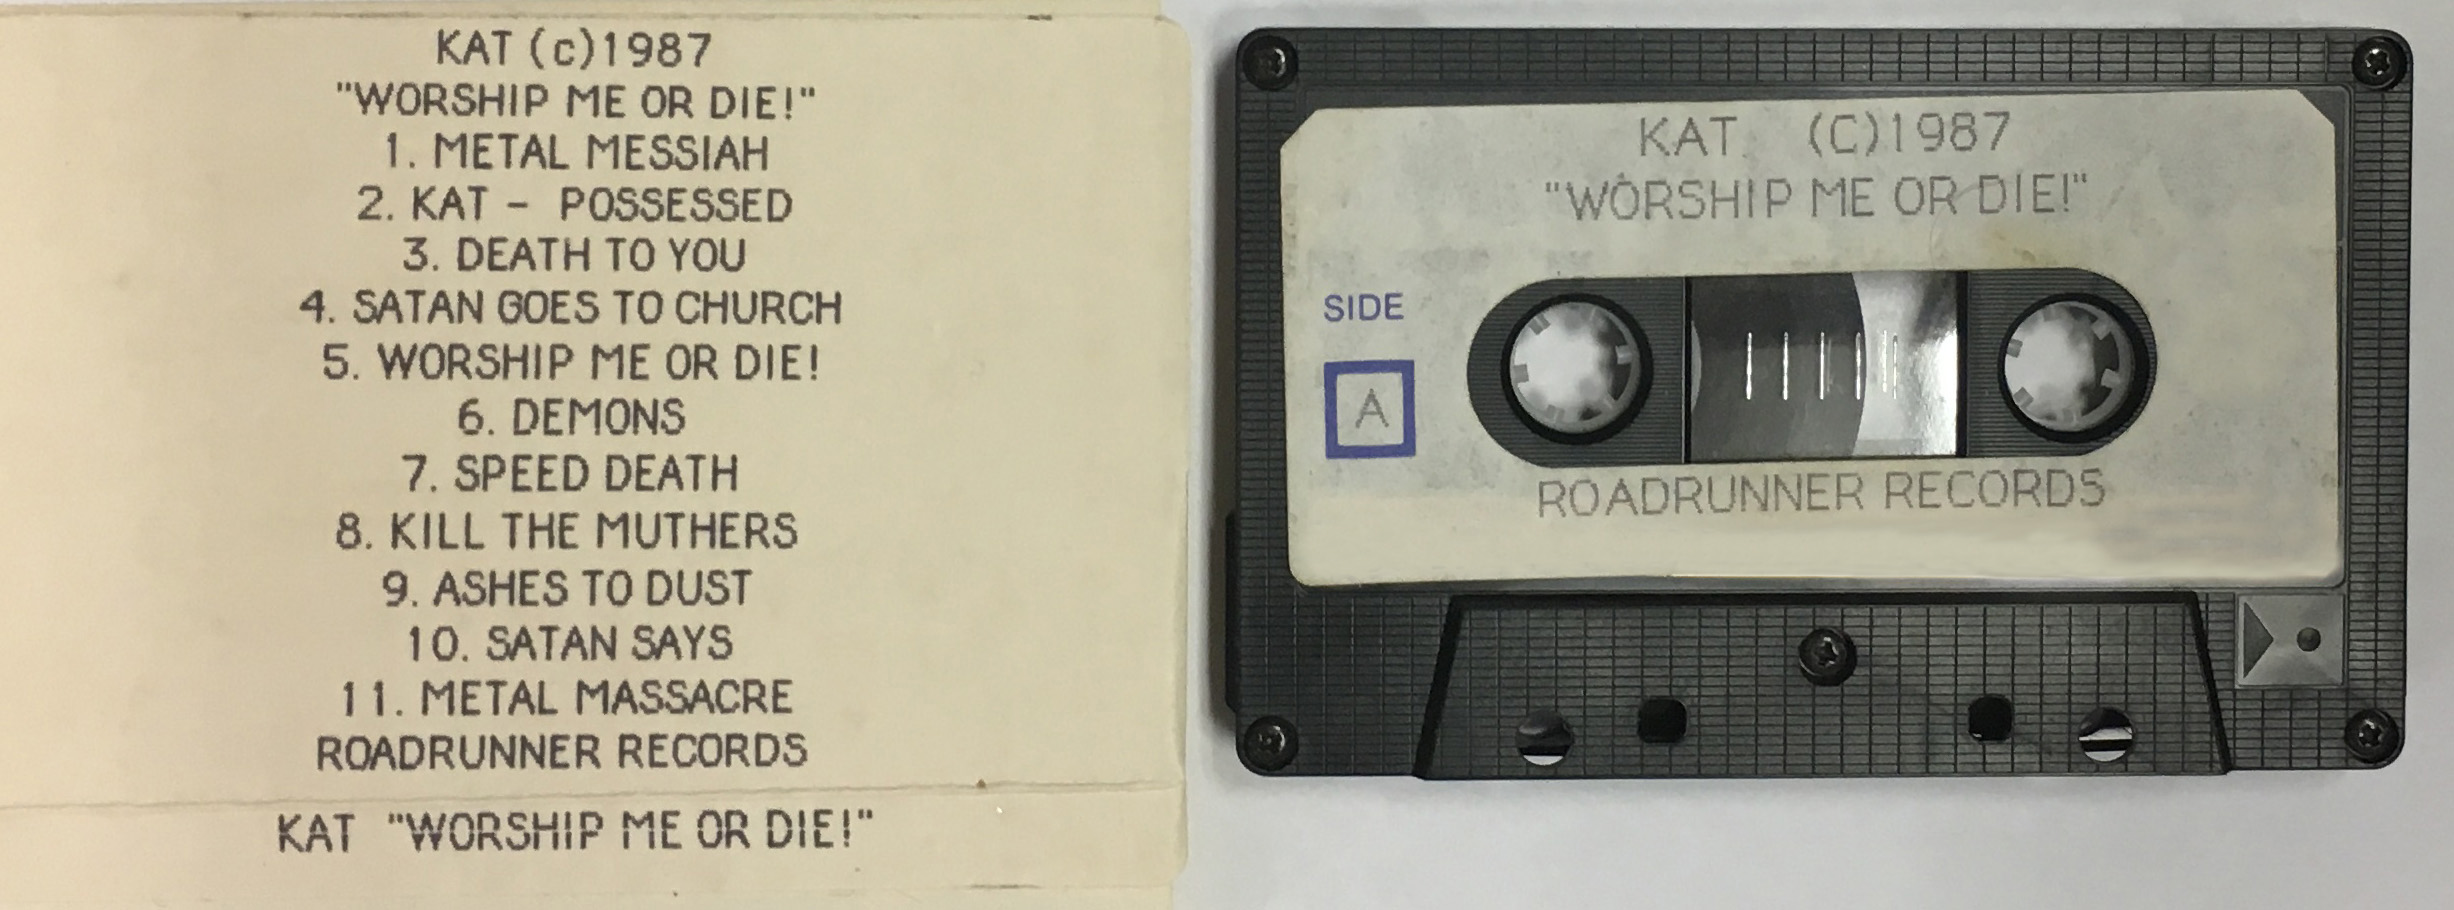 """RARE METAL HISTORY! PHOTO of The Great Kat's CASSETTE MIX from """"WORSHIP ME OR DIE!"""" recording! HISTORY is MADE!"""